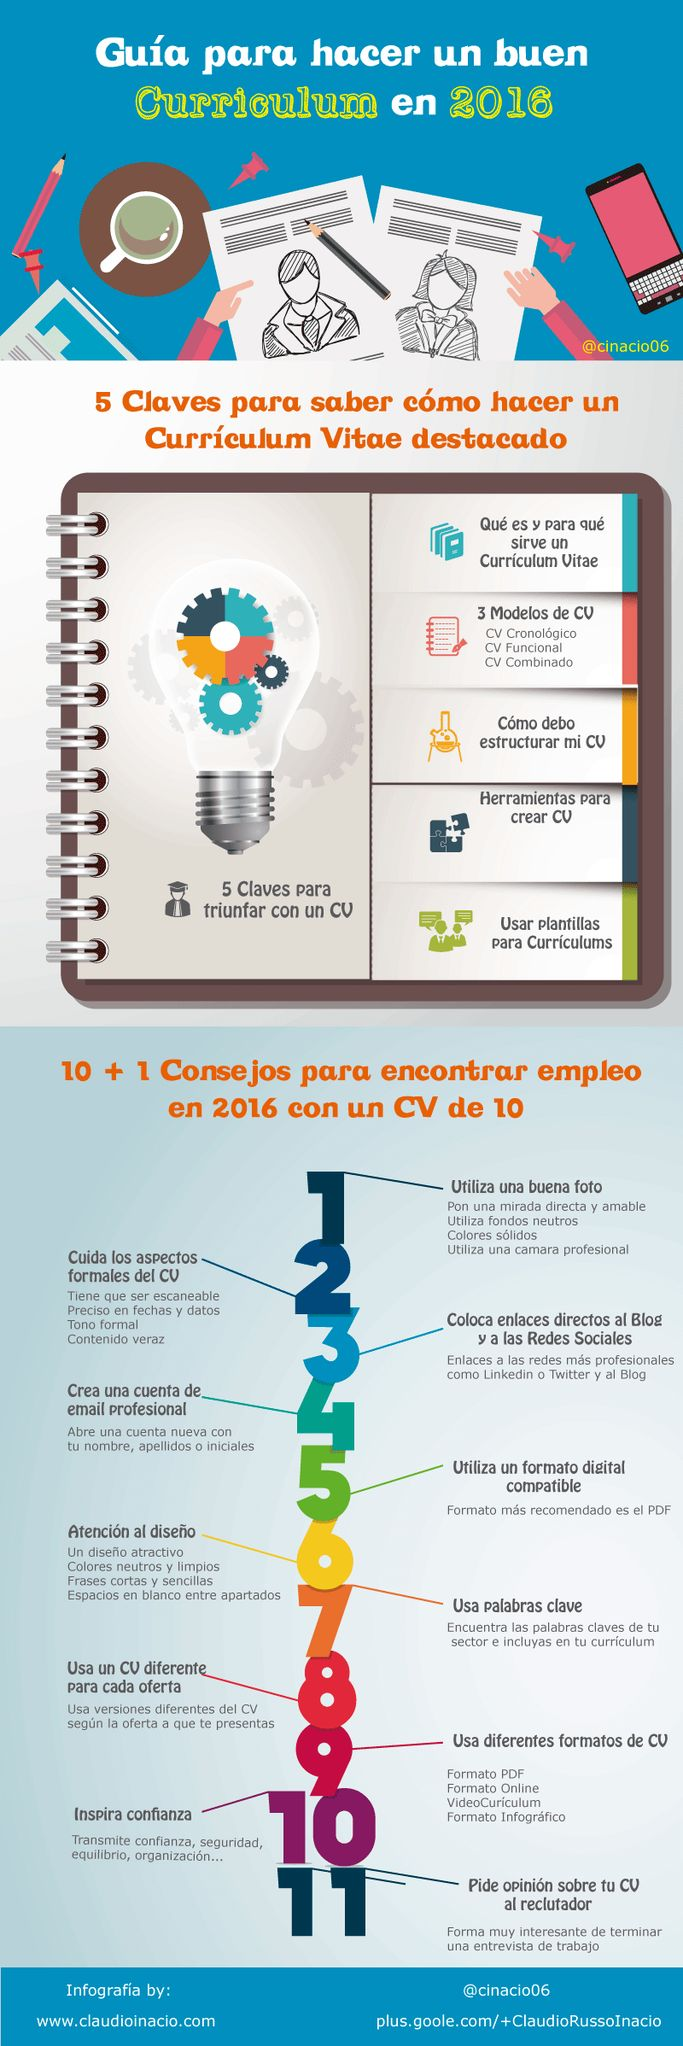 112 Best Cv Images On Pinterest Resume Interview And Curriculum